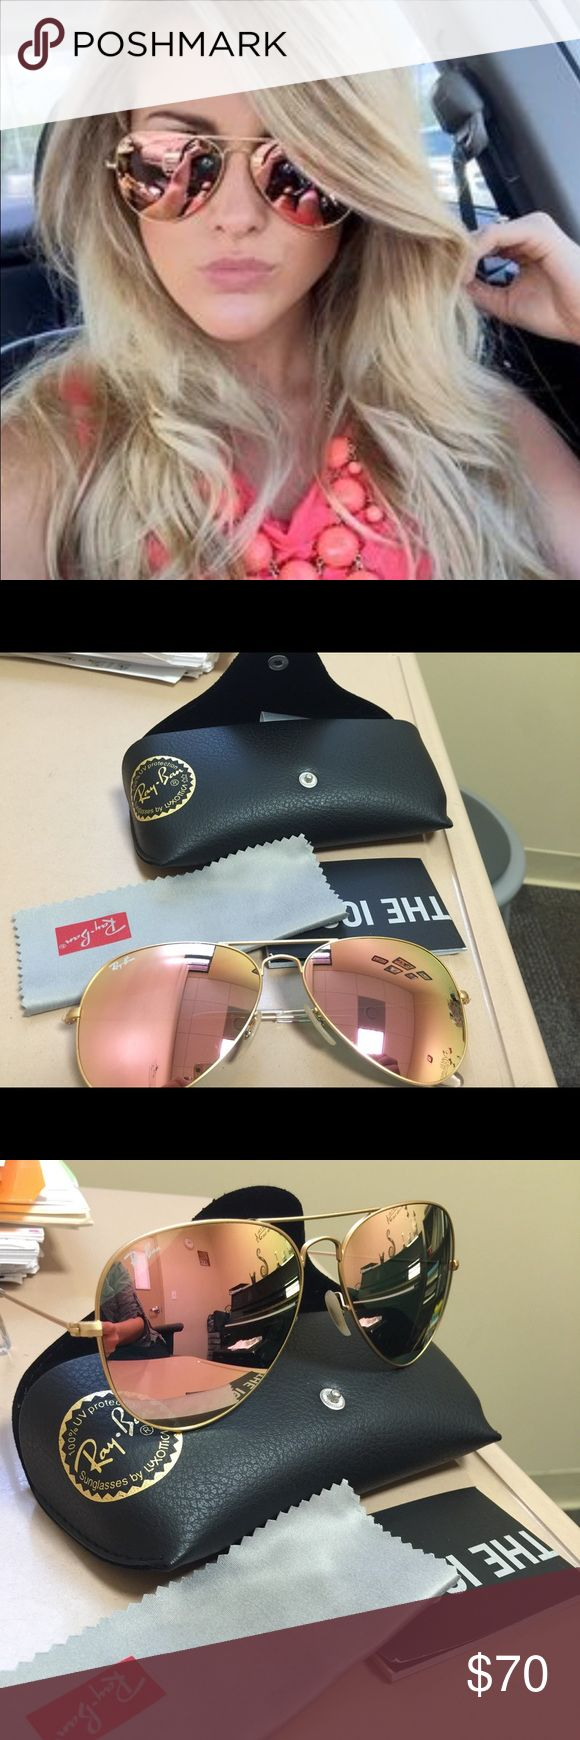 Beautiful Ray Ban aviator sunglasses Beautiful pink and golden Ray Ban aviator sunglasses. RB3025. 58-143N. They look good on anyone. You are going to live them. PRICE IS FIRM. Ray-Ban Accessories Sunglasses